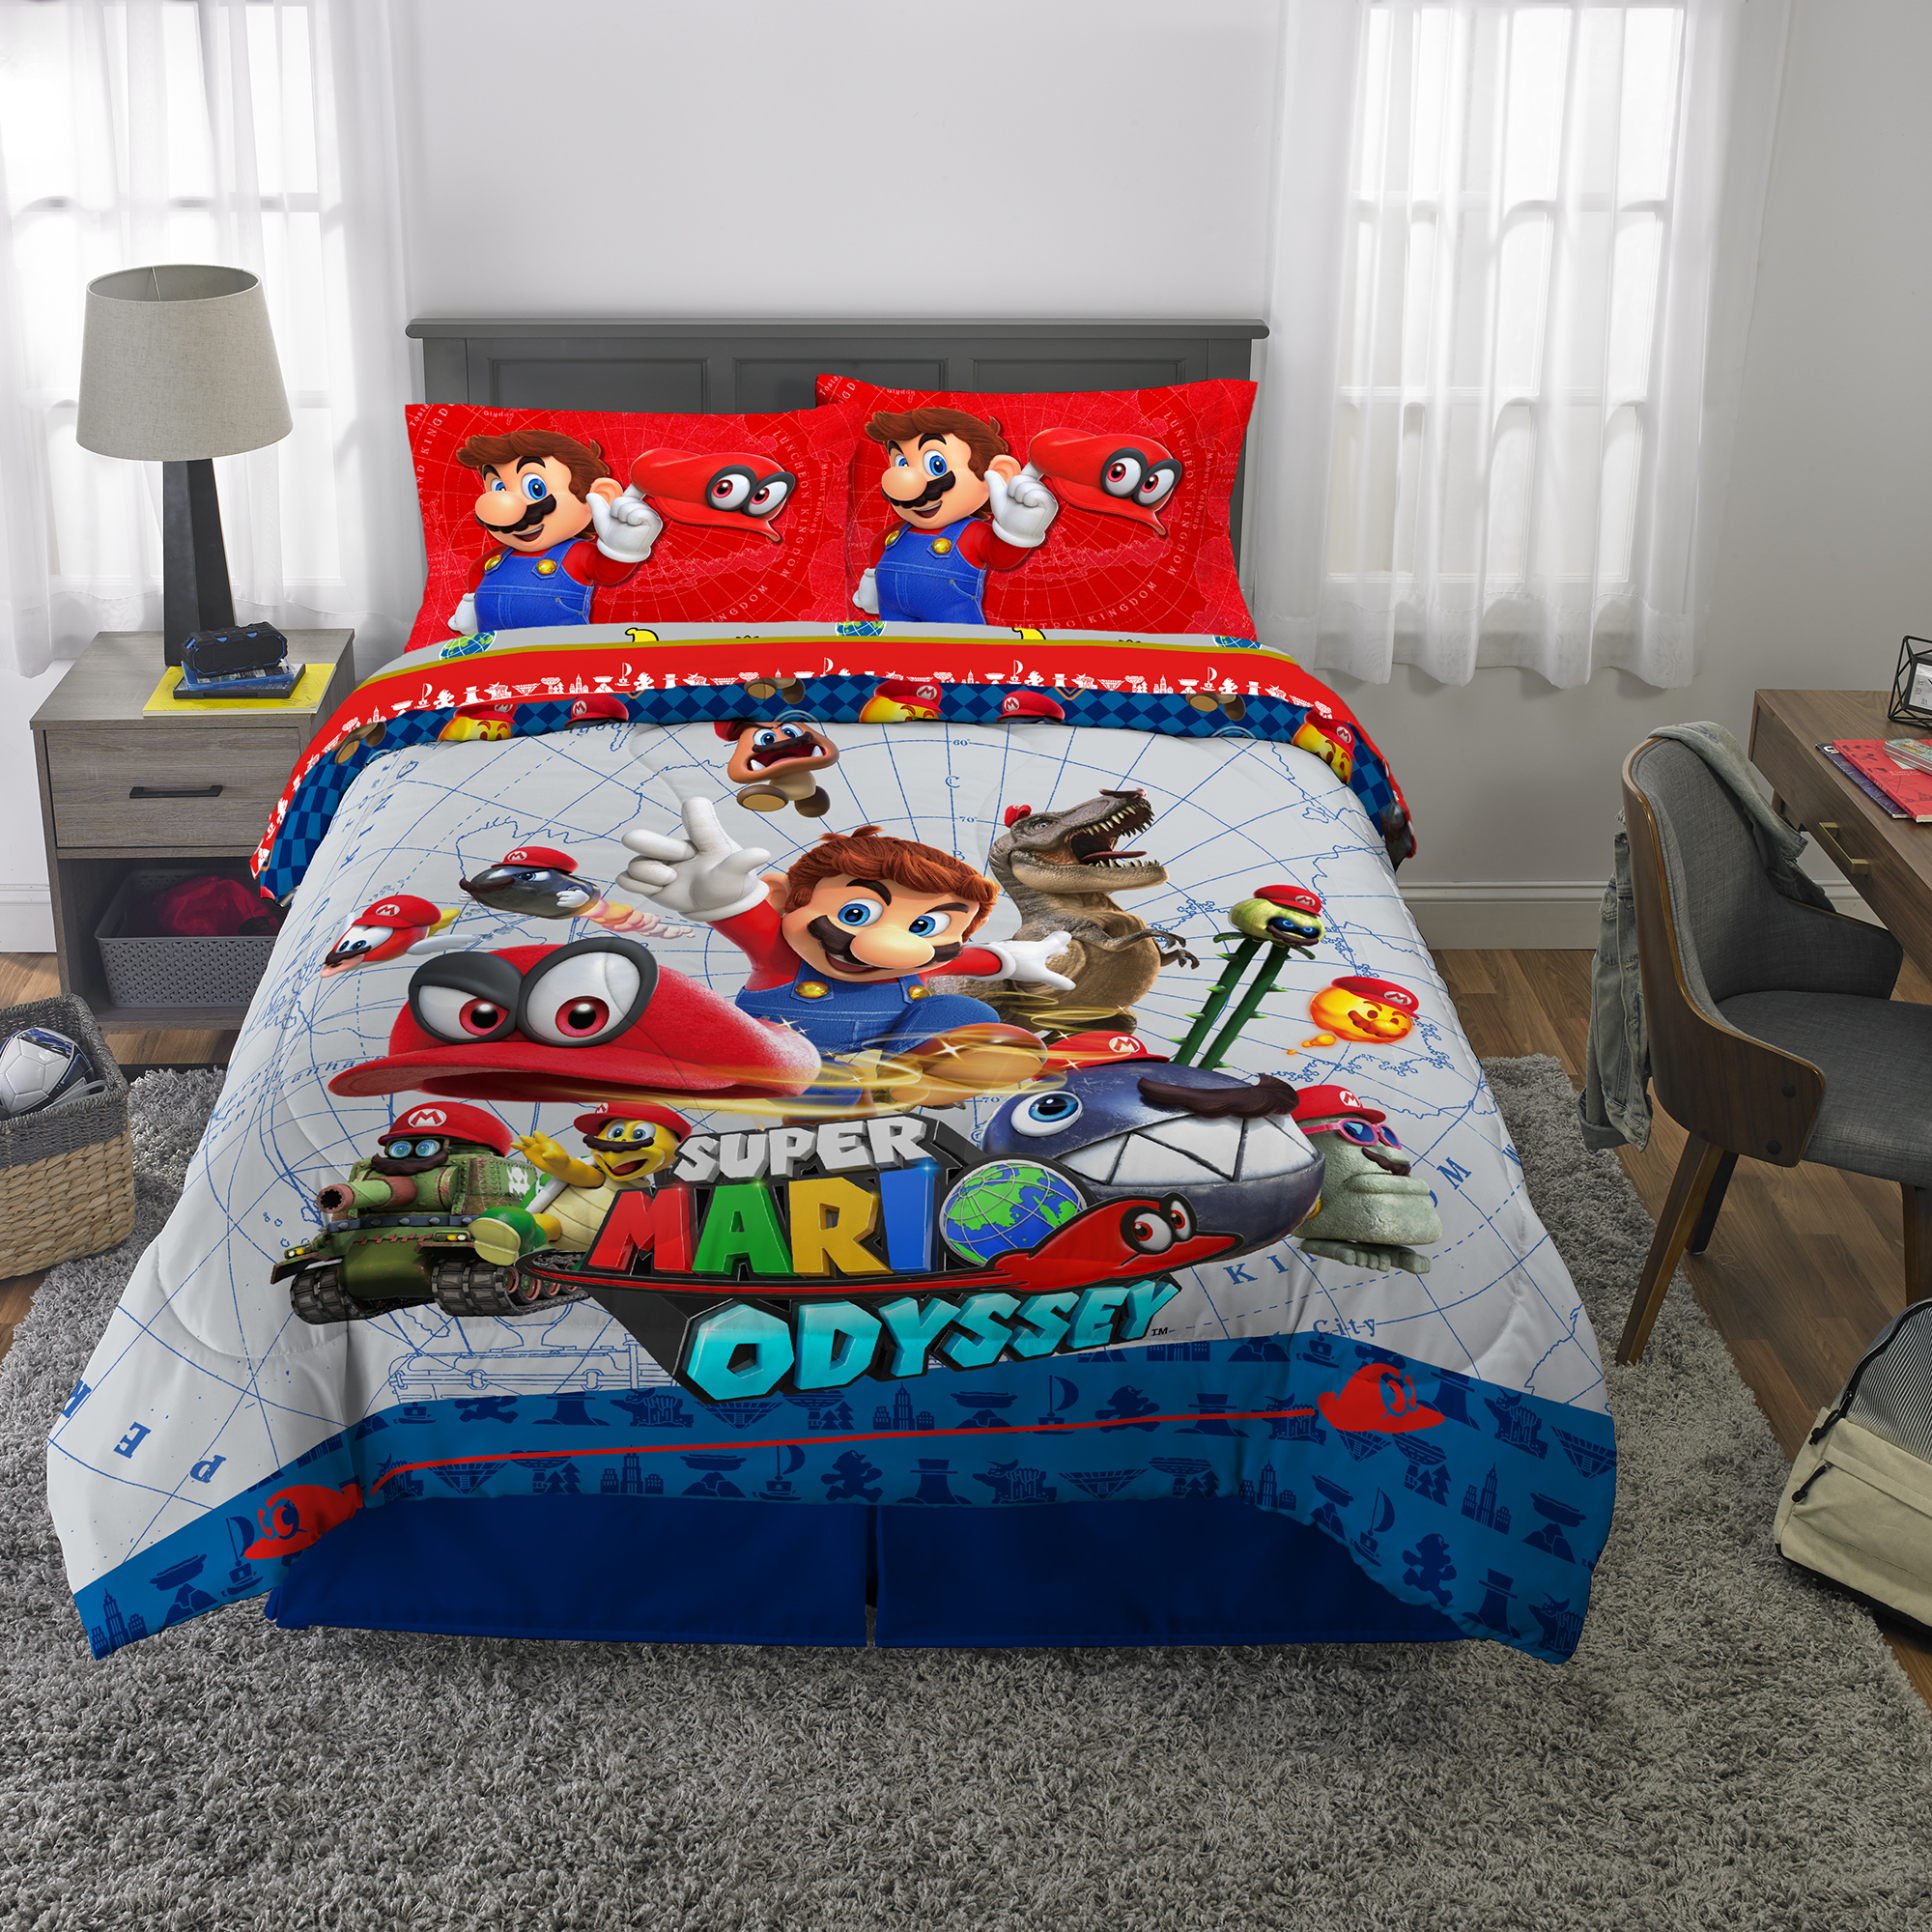 Picture of: Super Mario Odyssey Bed In A Bag Kids Bedding Bundle Set 5 Piece Full Walmart Com Walmart Com